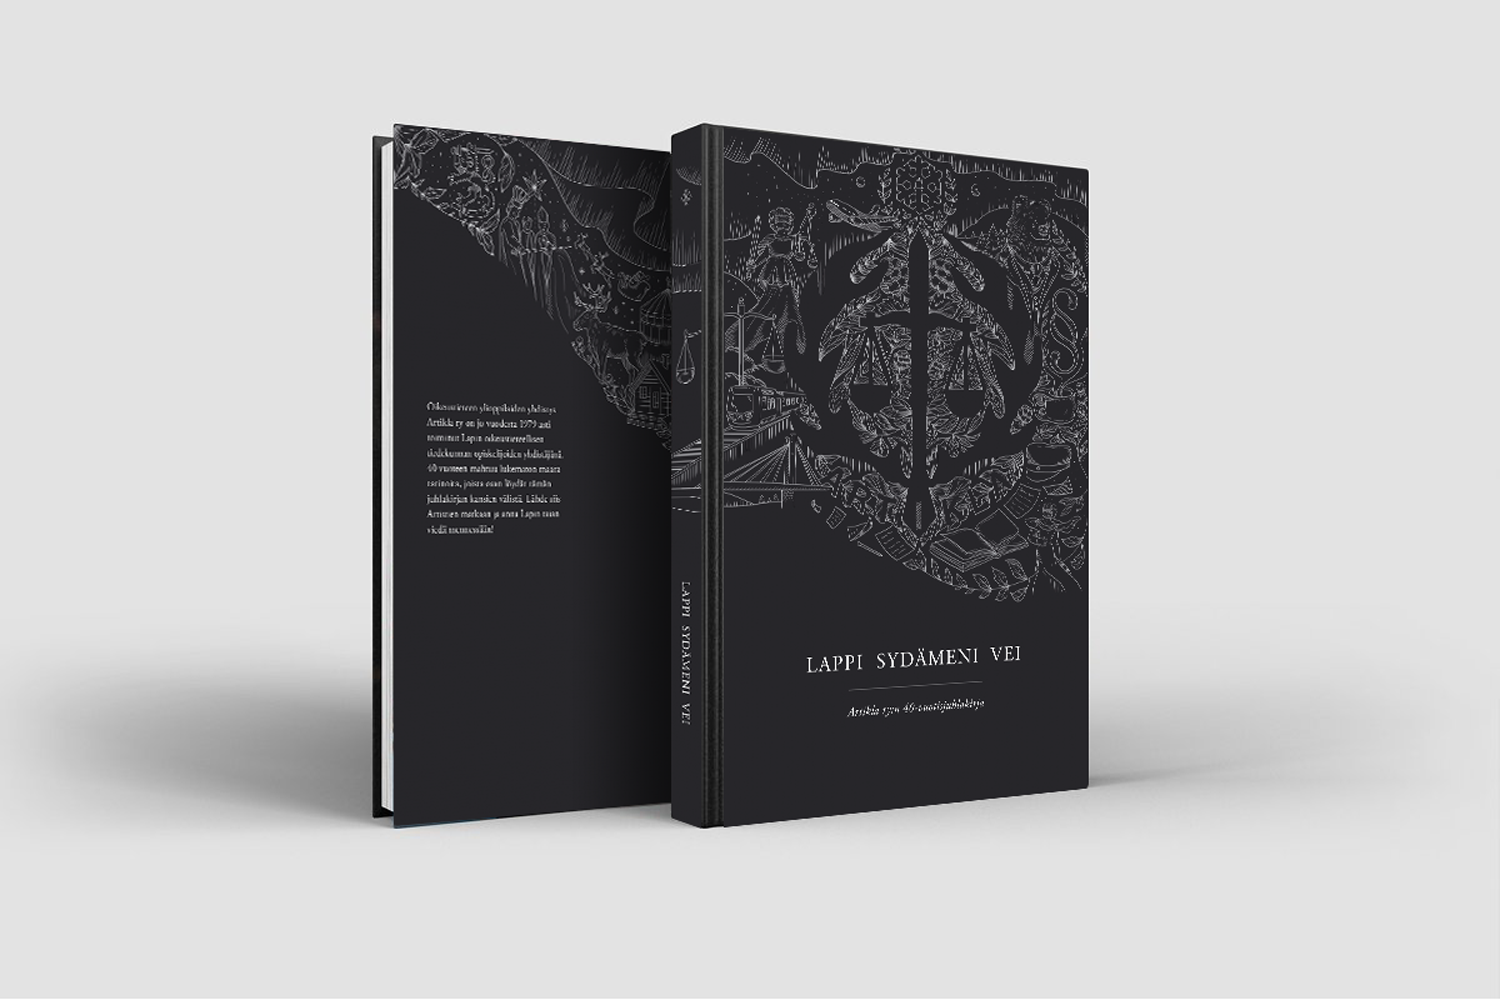 Book cover illustration mockup